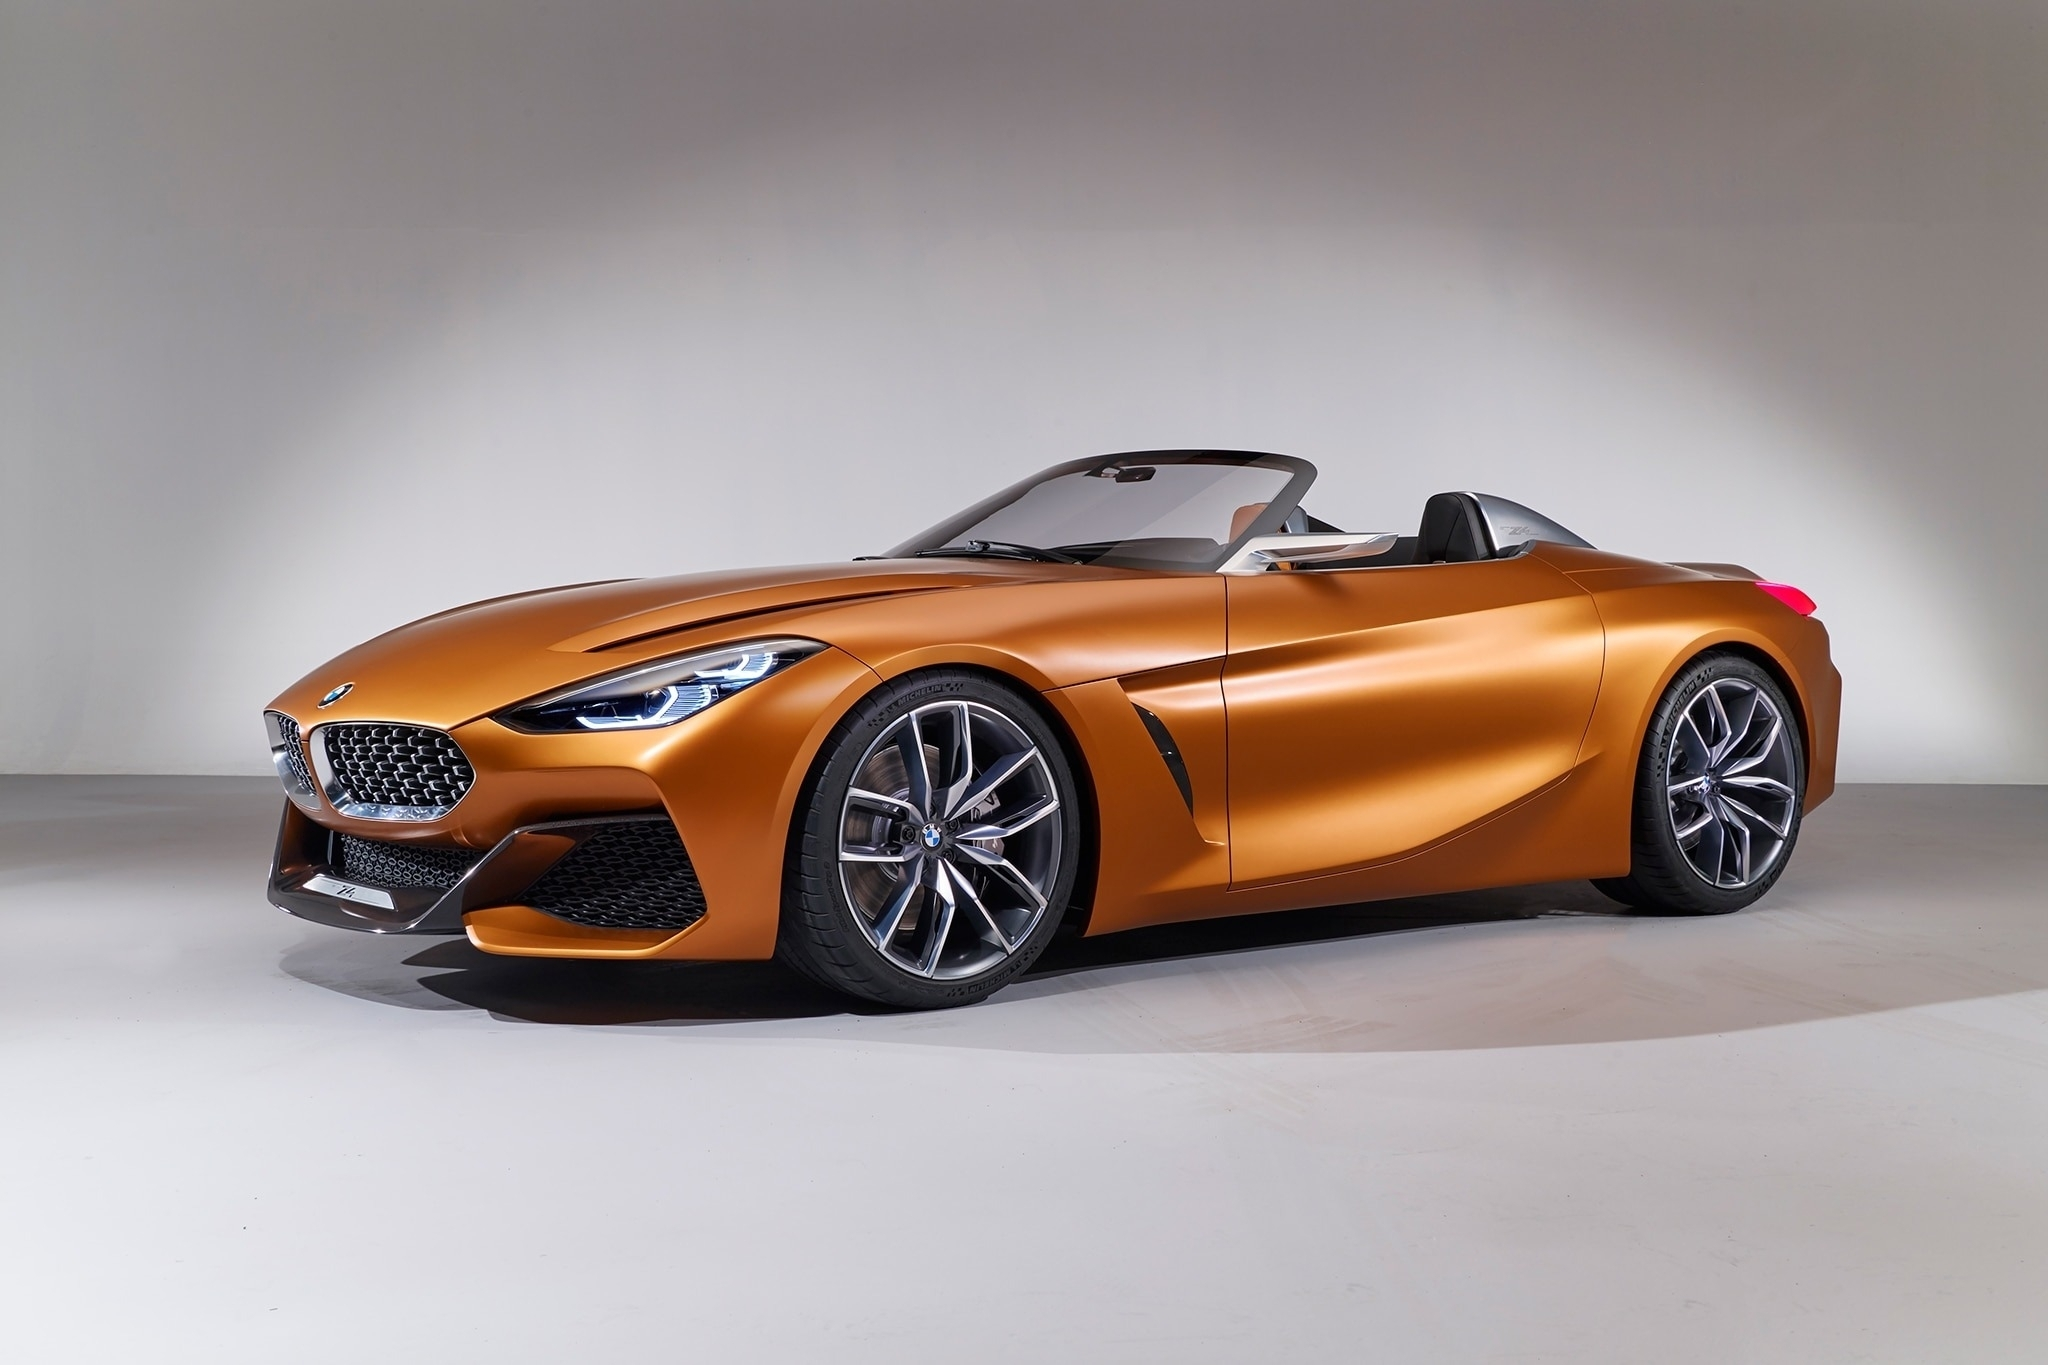 64 New 2019 BMW Z4 M Roadster Specs